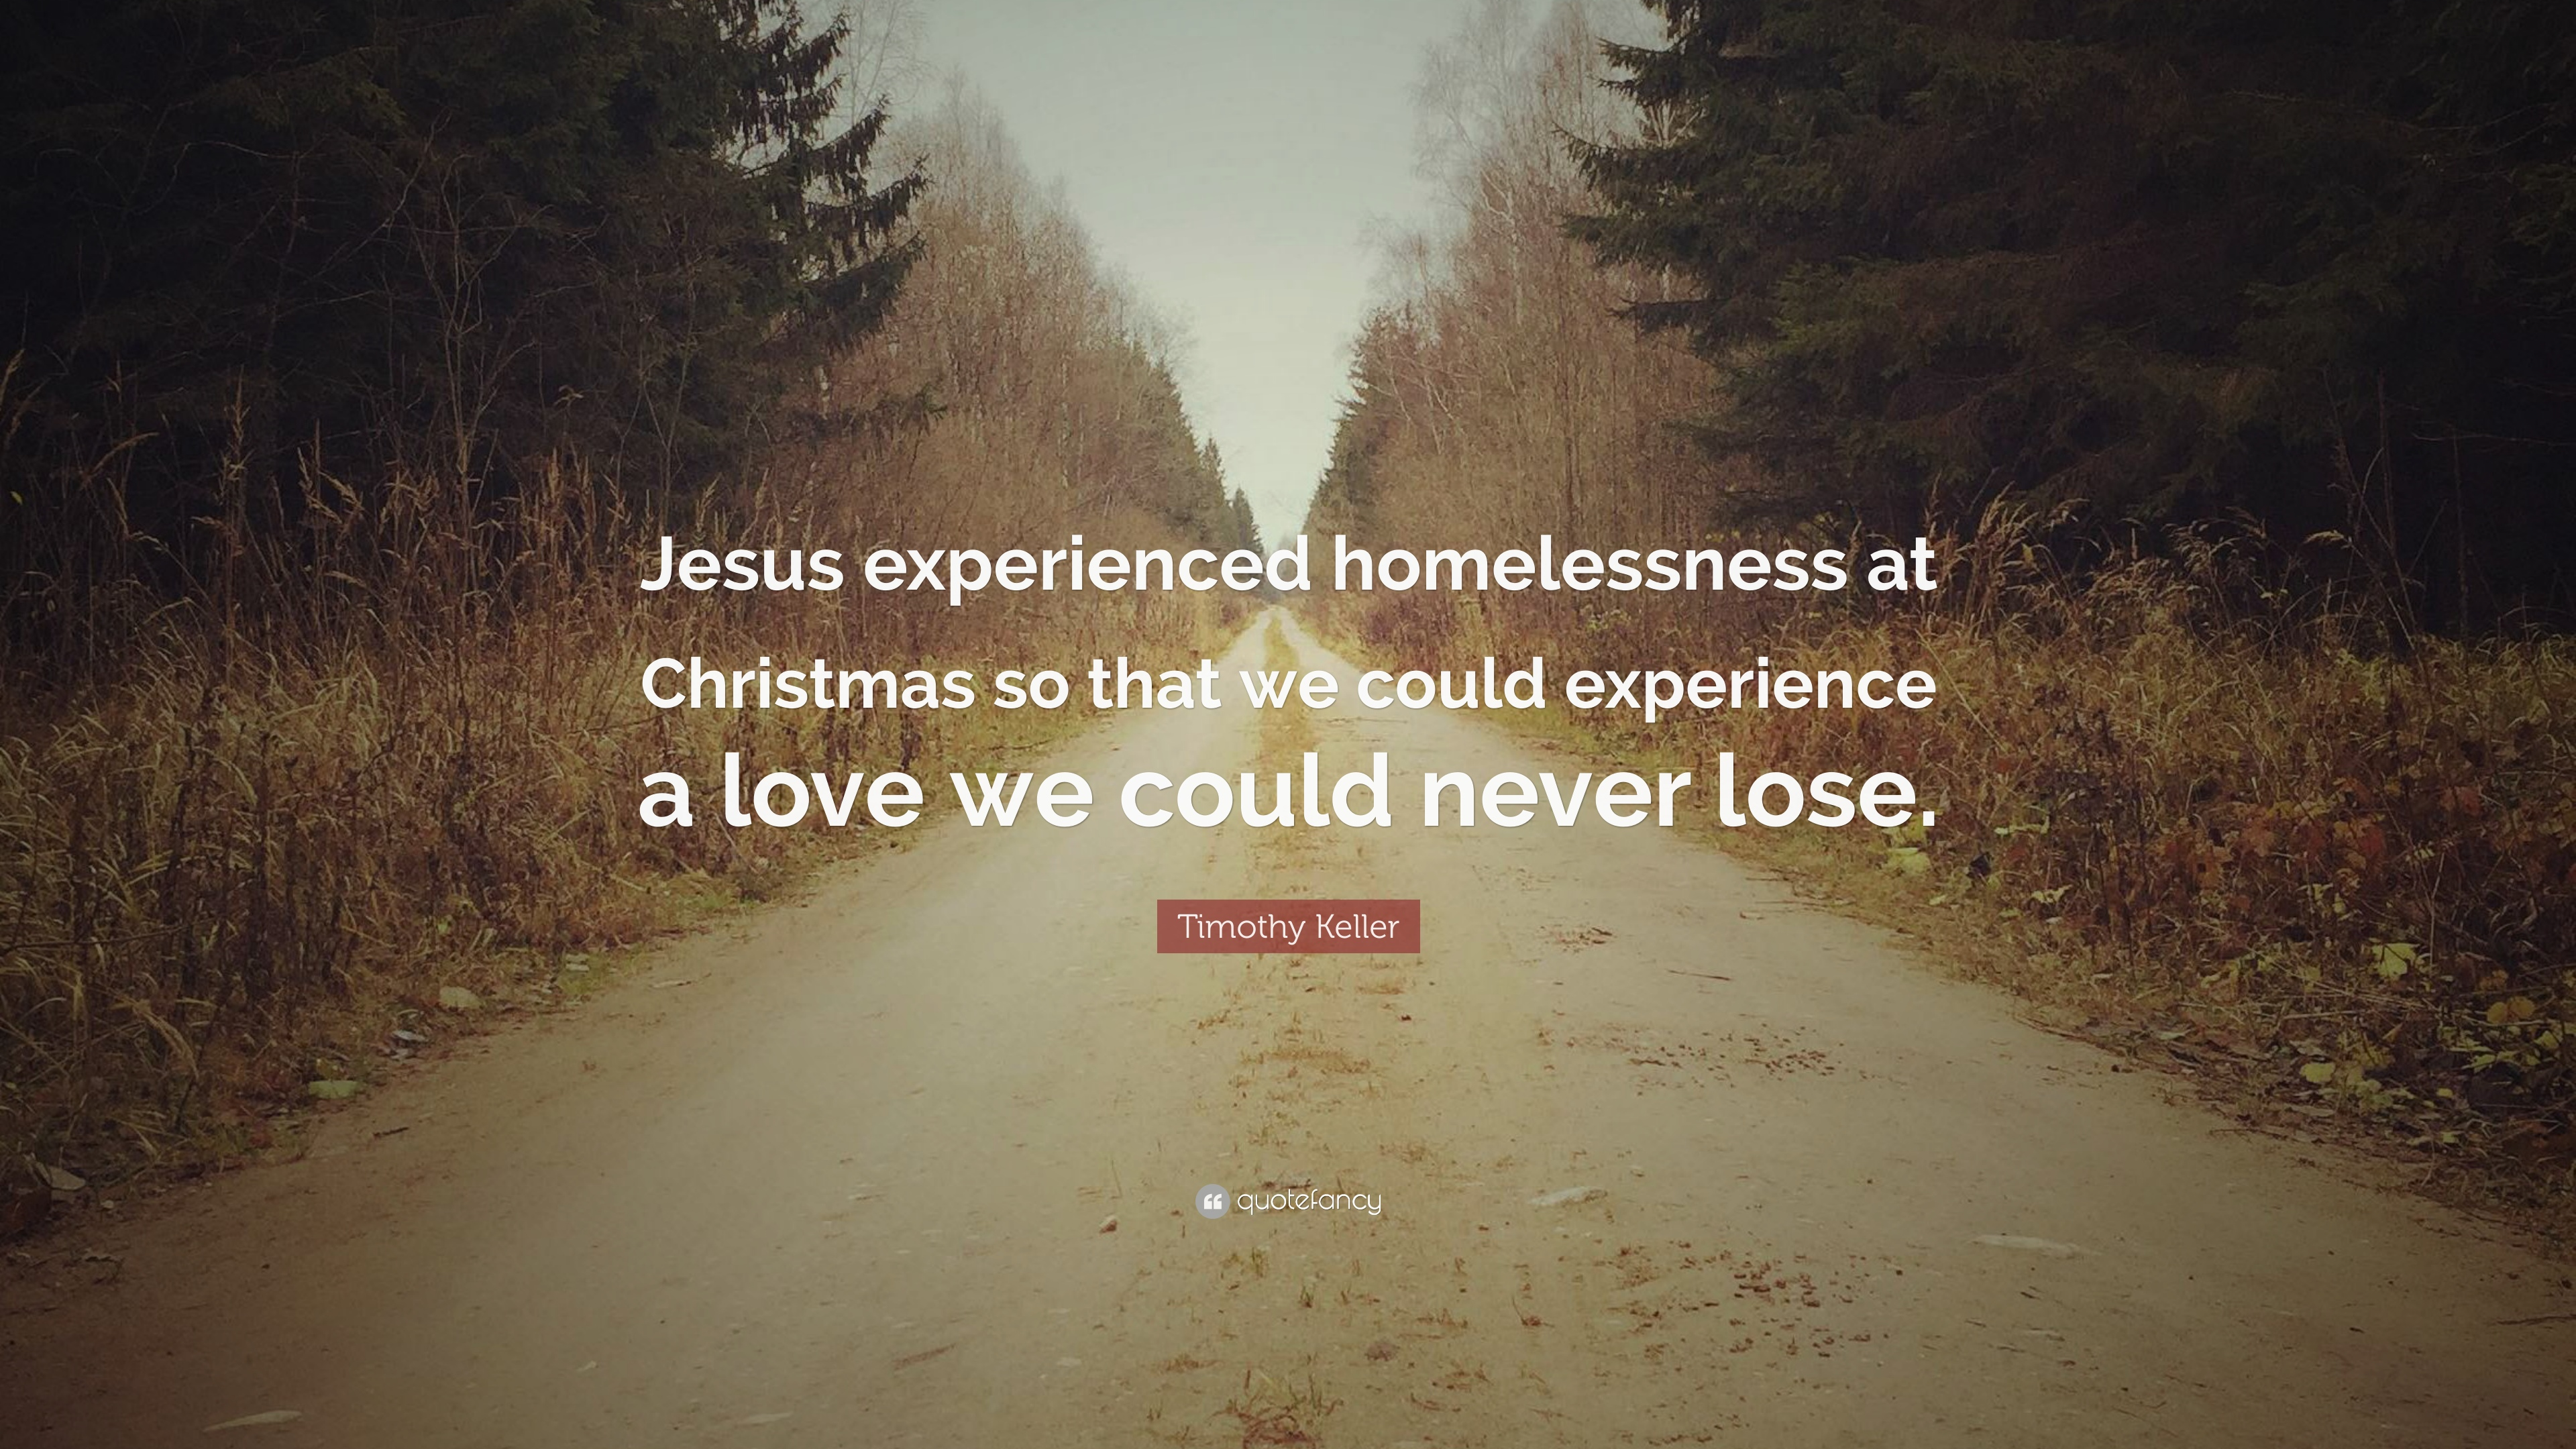 Jesus Christmas Quote.Timothy Keller Quote Jesus Experienced Homelessness At